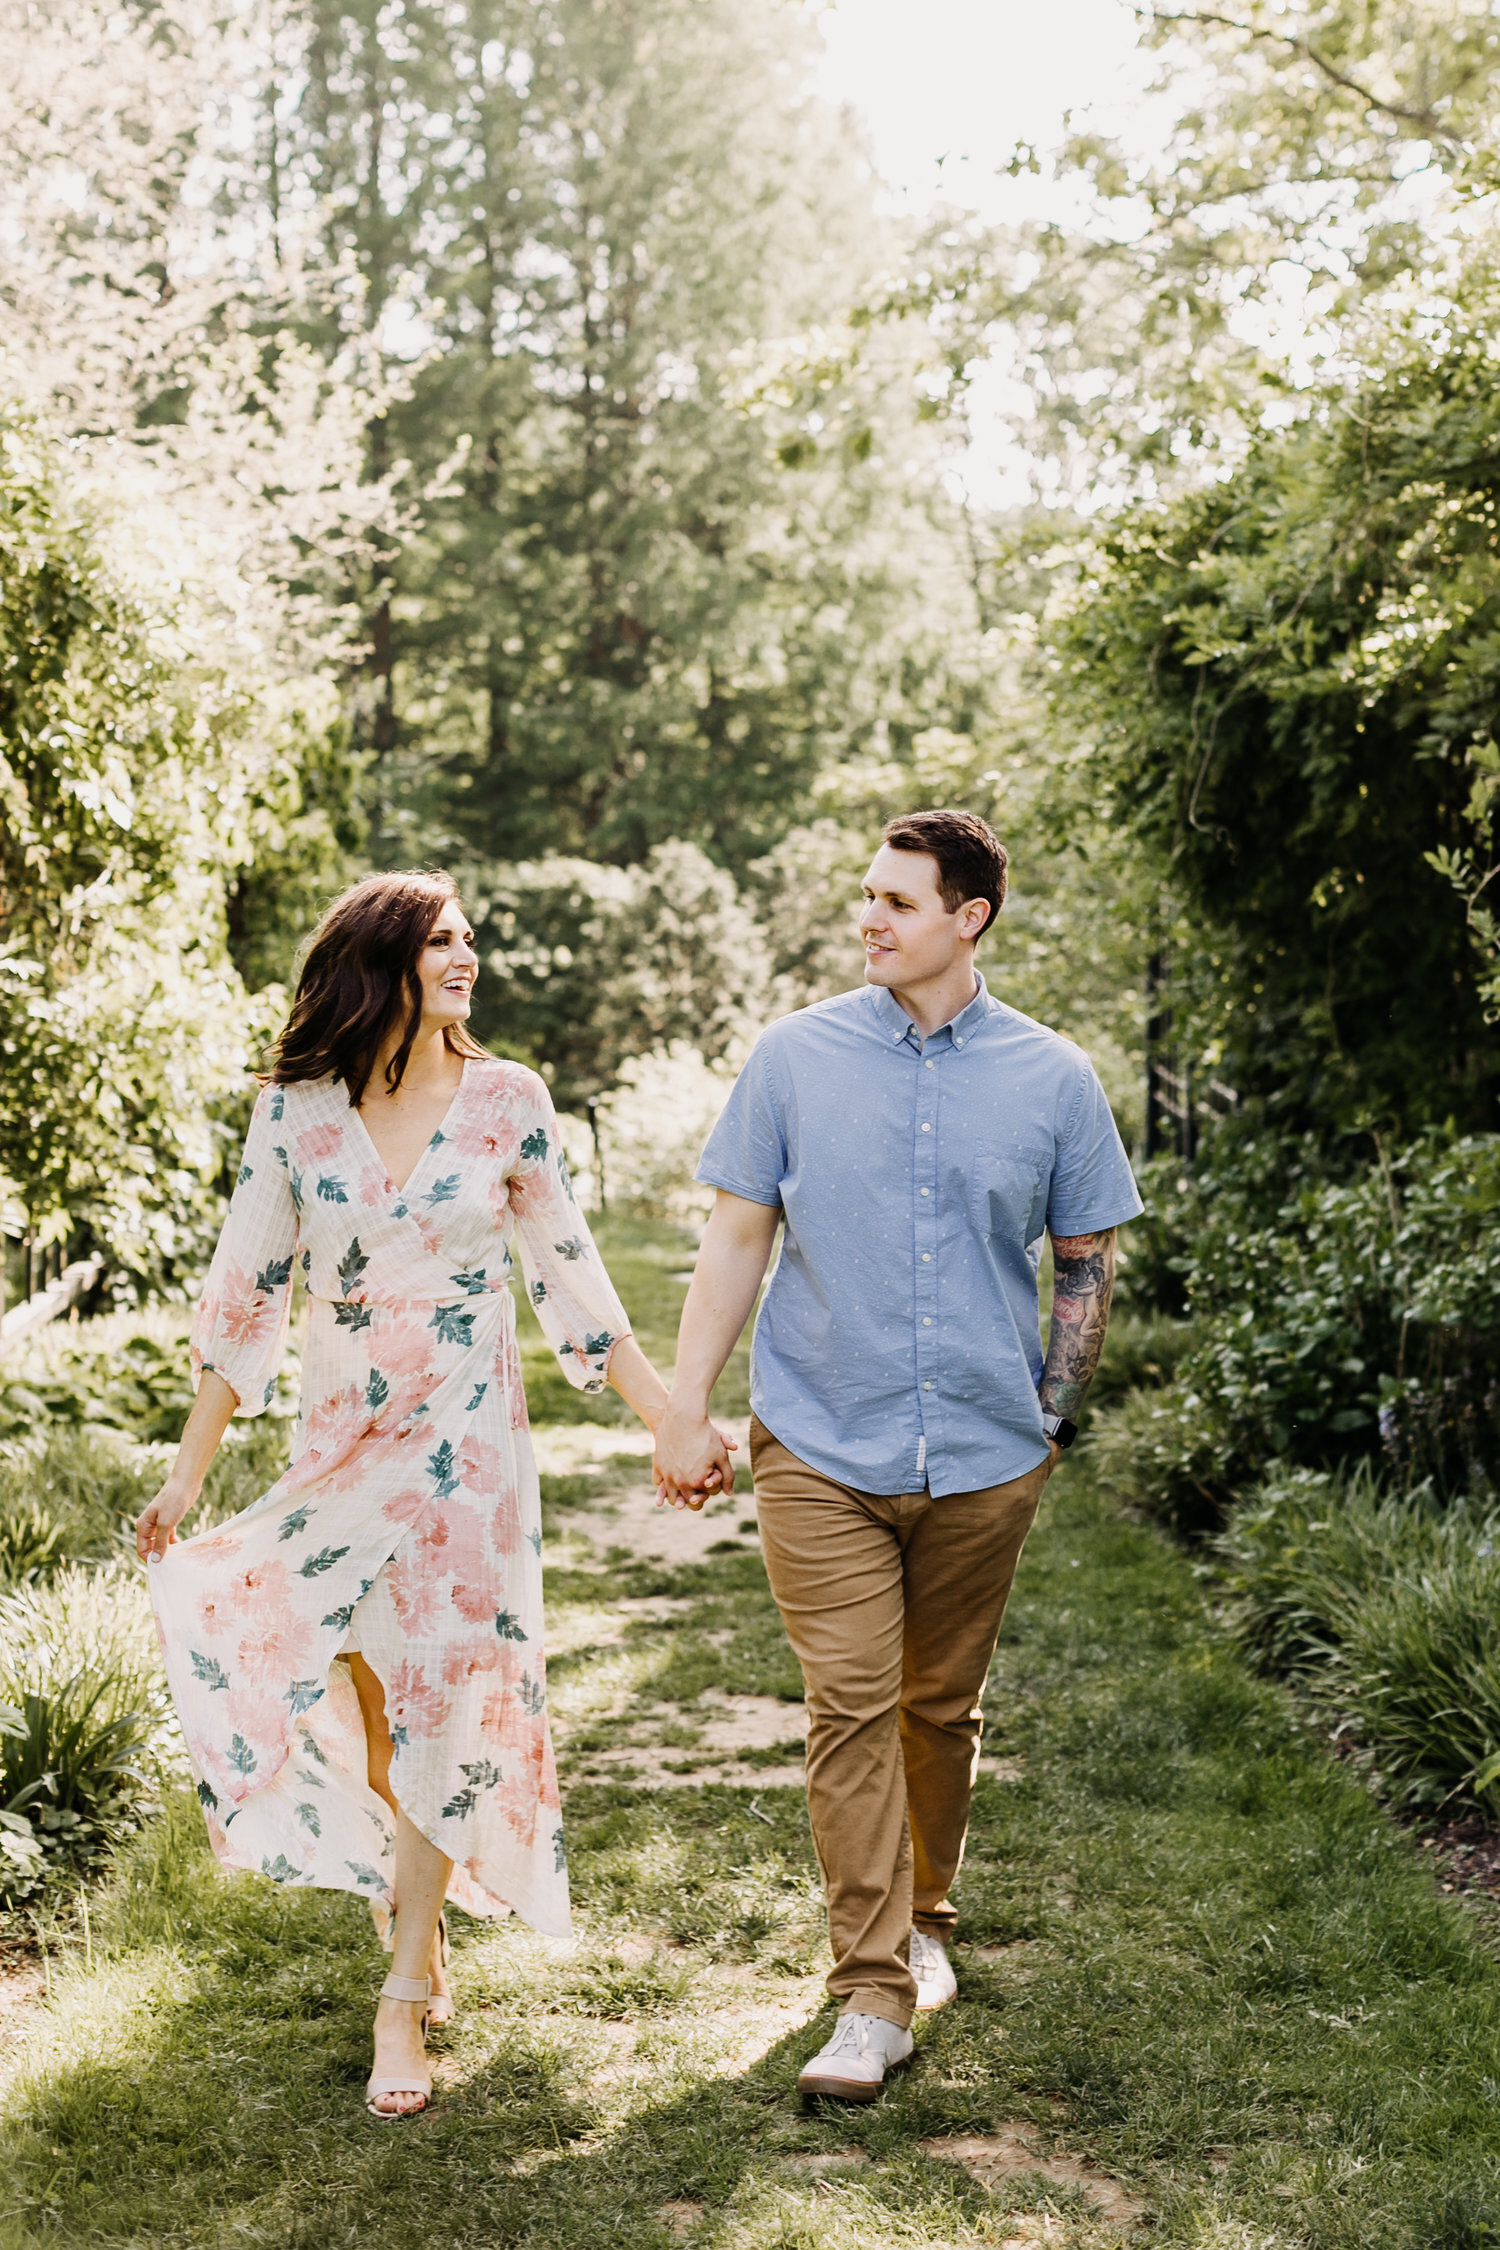 engaged couple garden flowers